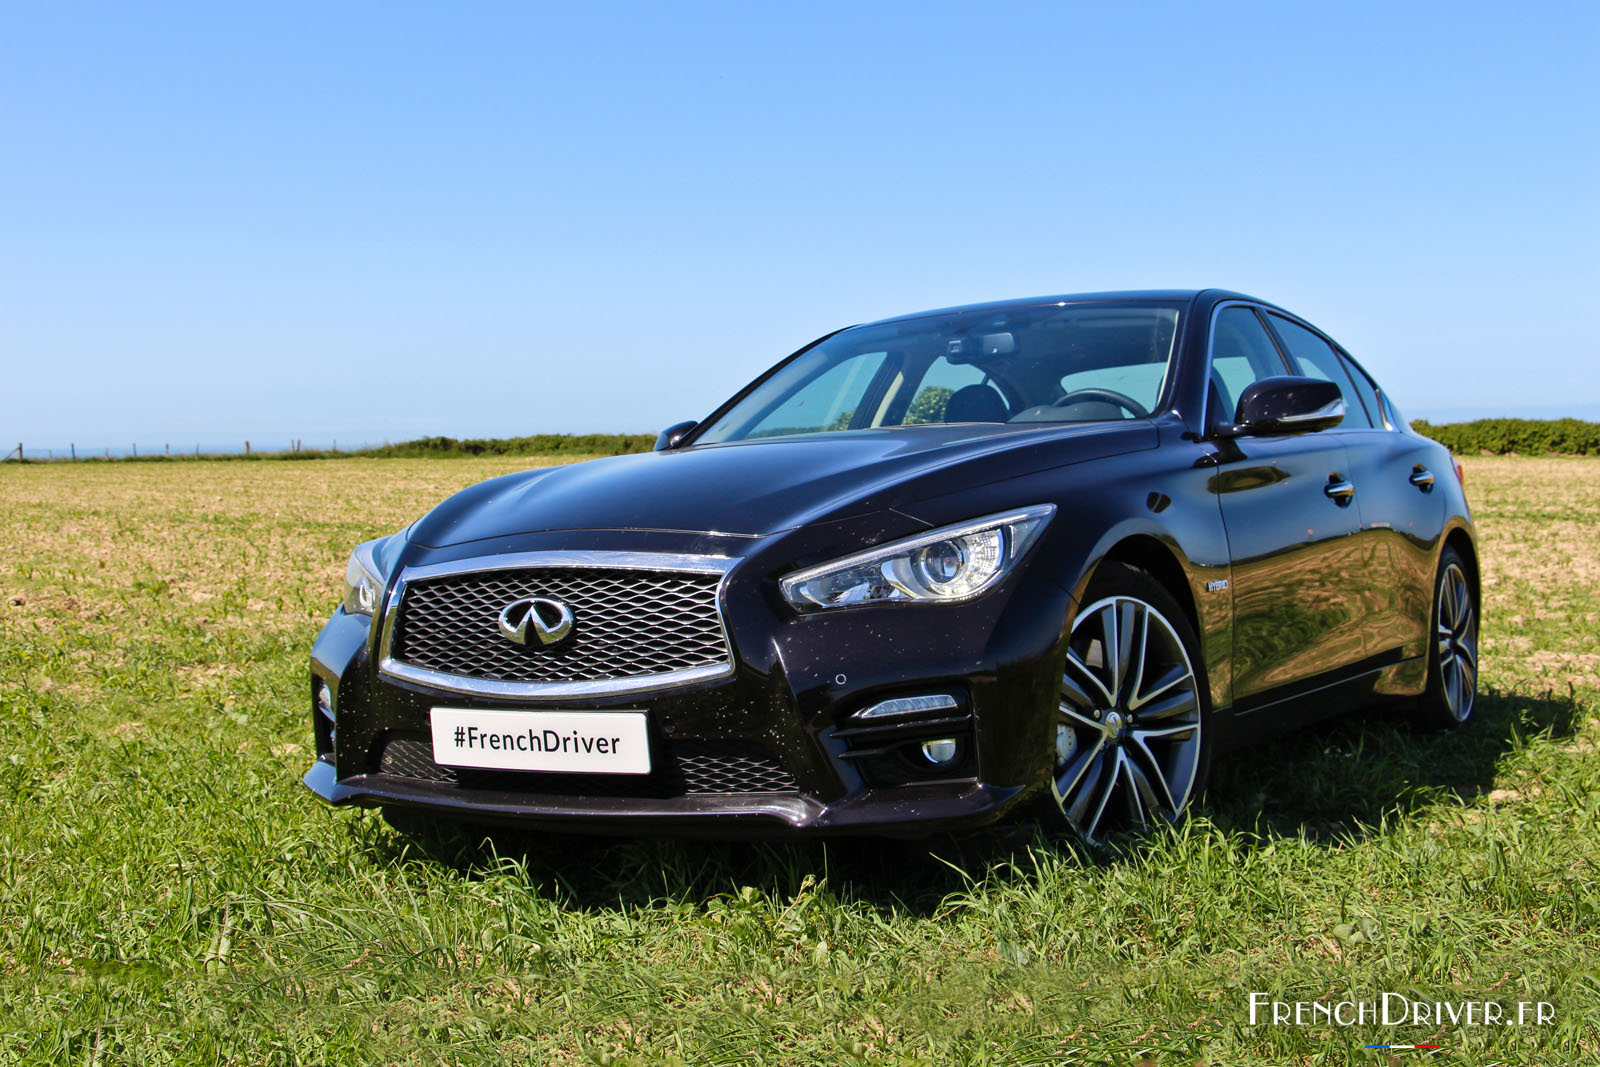 essai de l 39 infiniti q50 sport hybrid awd l gante sportive french driver. Black Bedroom Furniture Sets. Home Design Ideas